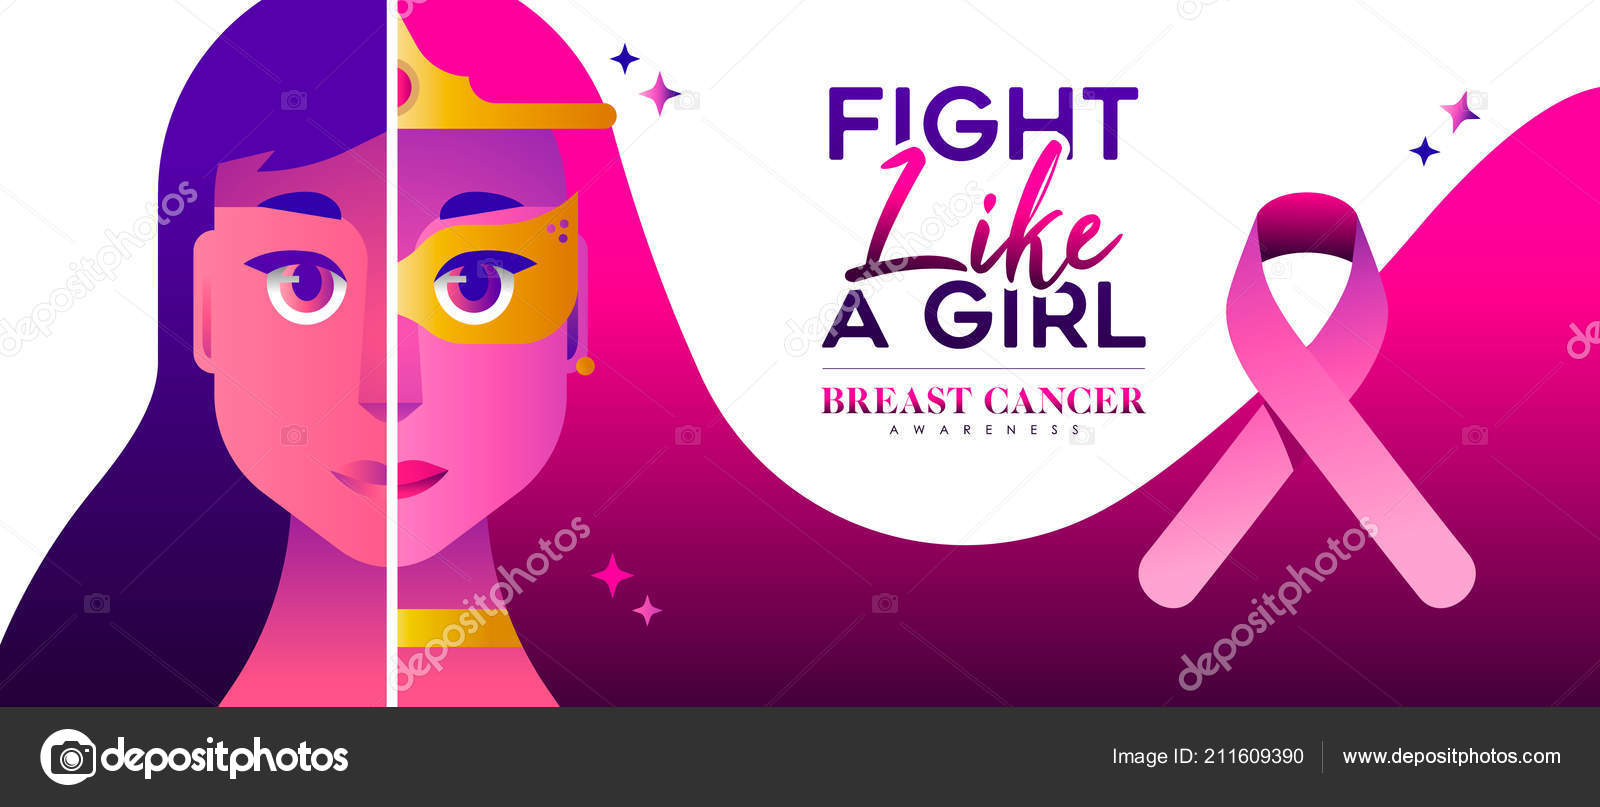 Breast Cancer Awareness Illustration Fight Girl Concept Strong Women